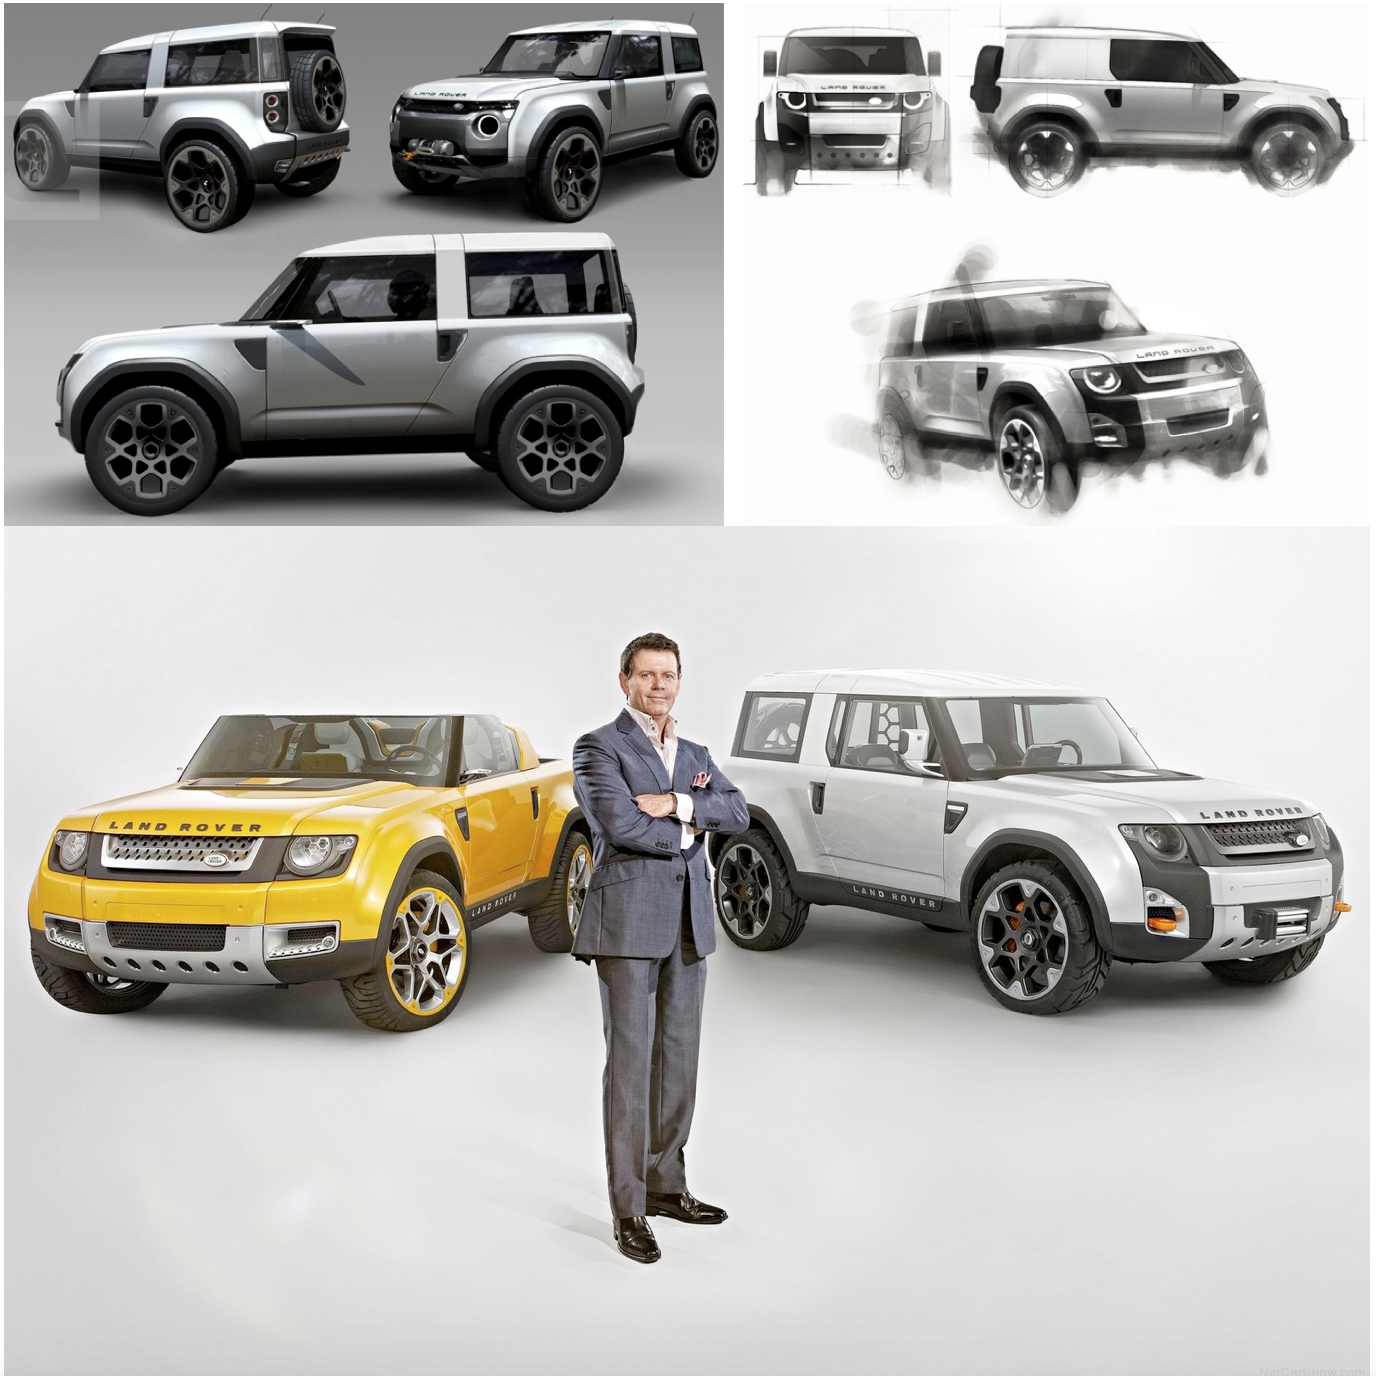 2020 Land Rover Defender: All New Model Looks Like A Bank